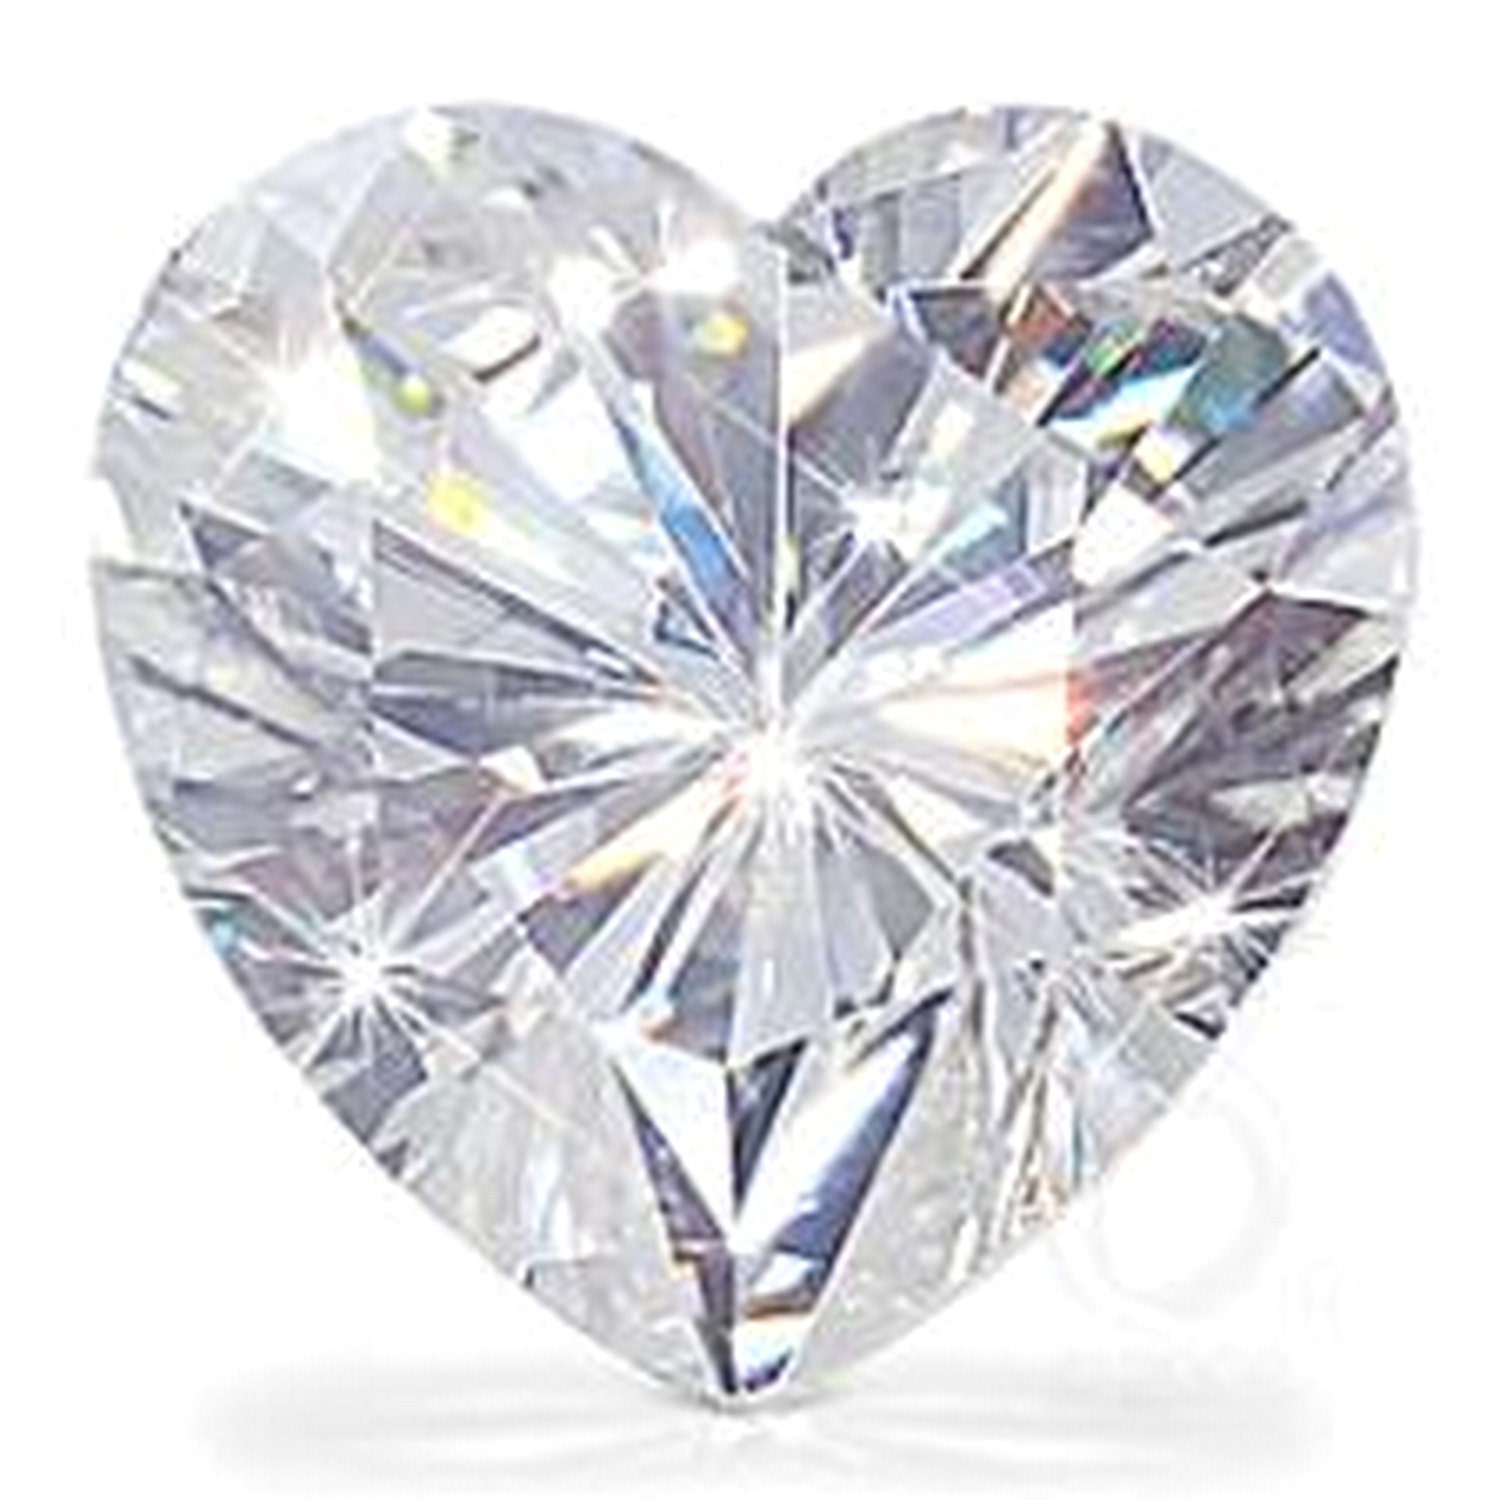 princess diamonds foreverone david jewelry douglas and product gemstone moissanite